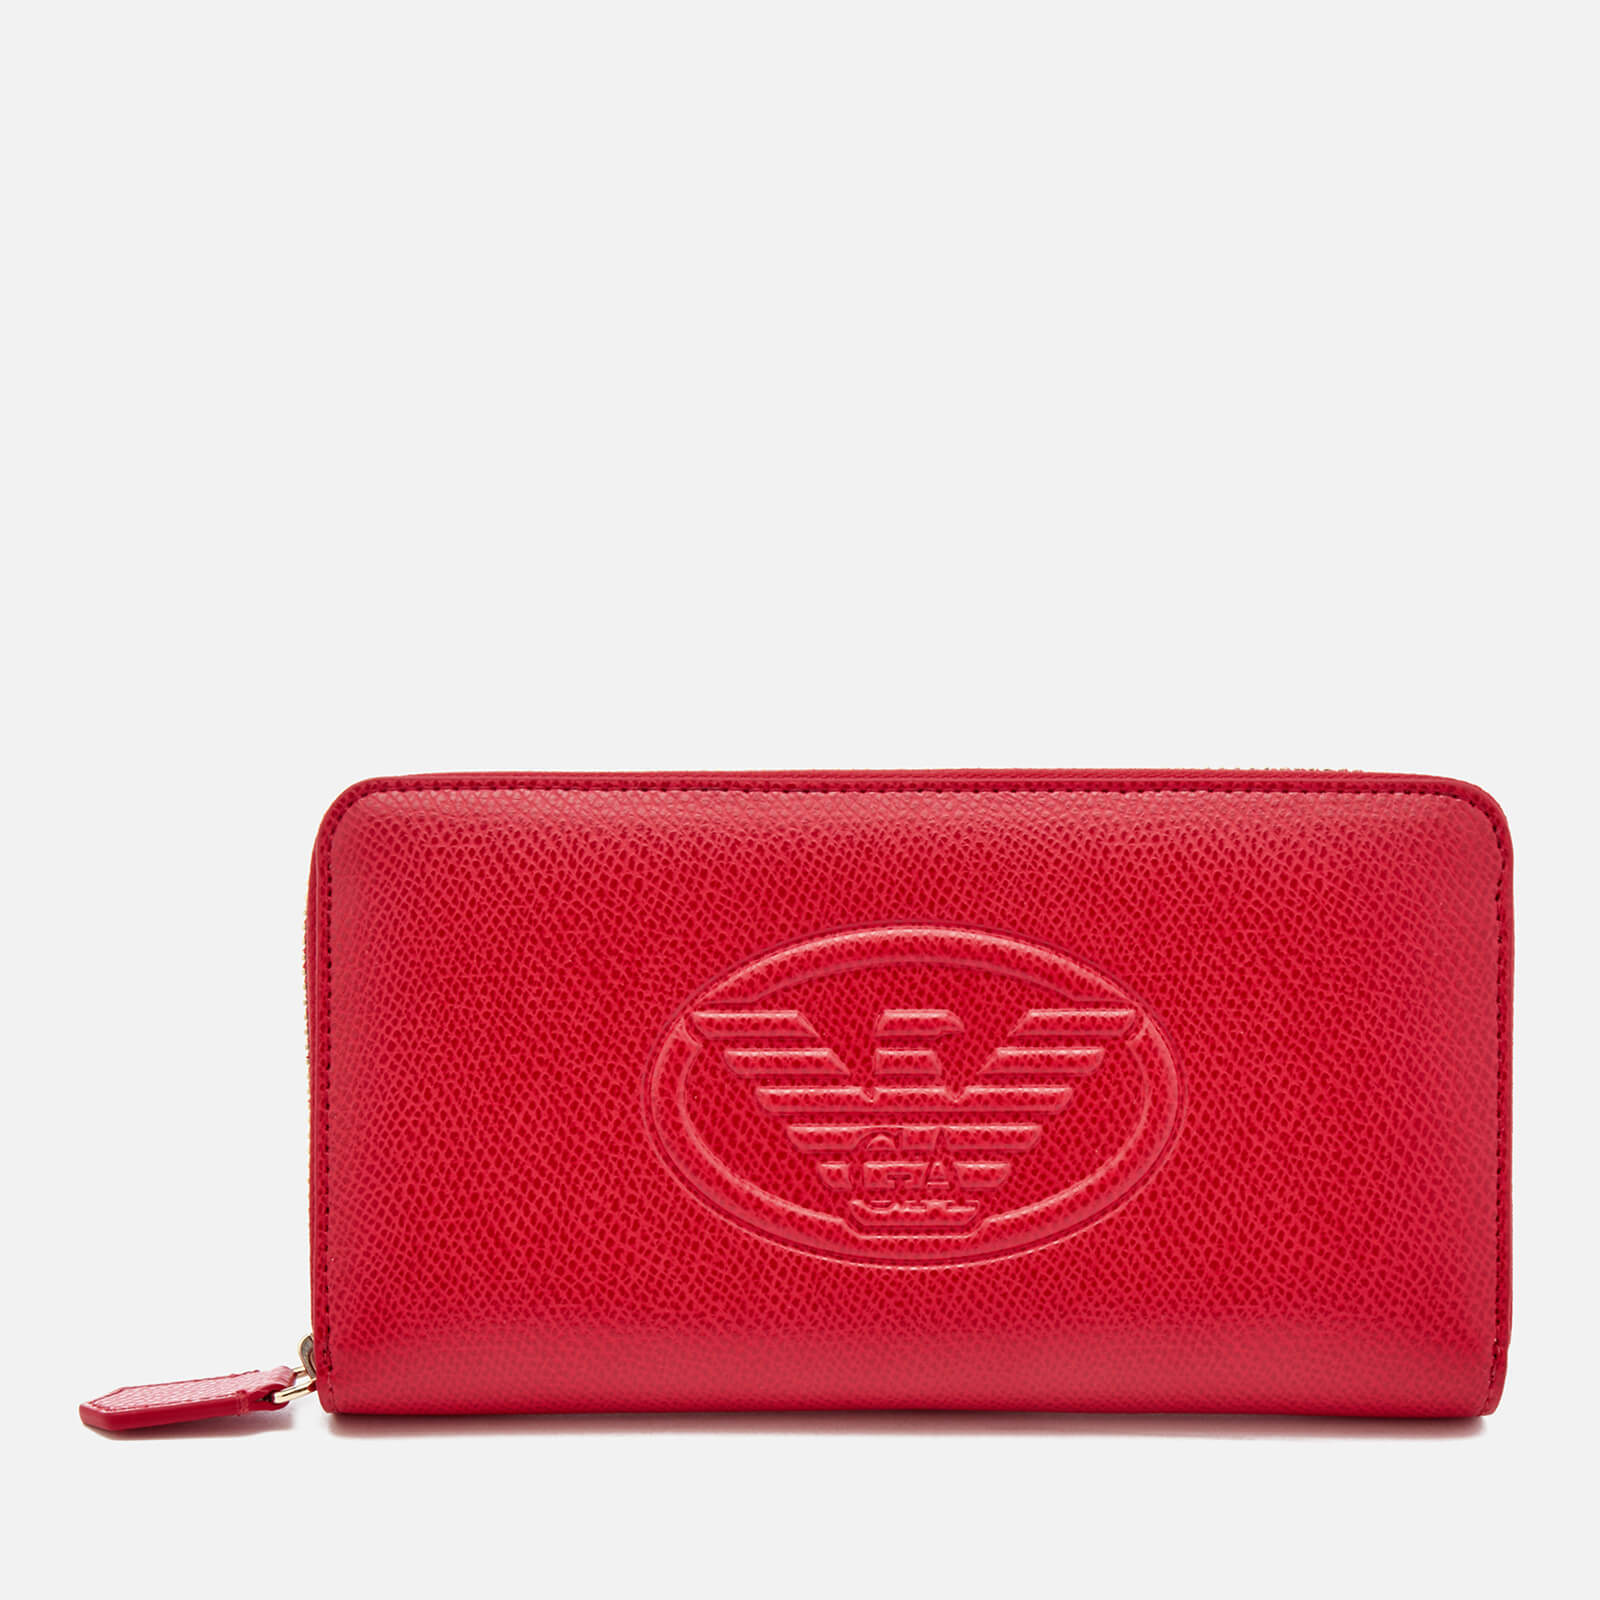 b0c990a7d3a Emporio Armani Women s Zip Around Wallet - Red - Free UK Delivery ...